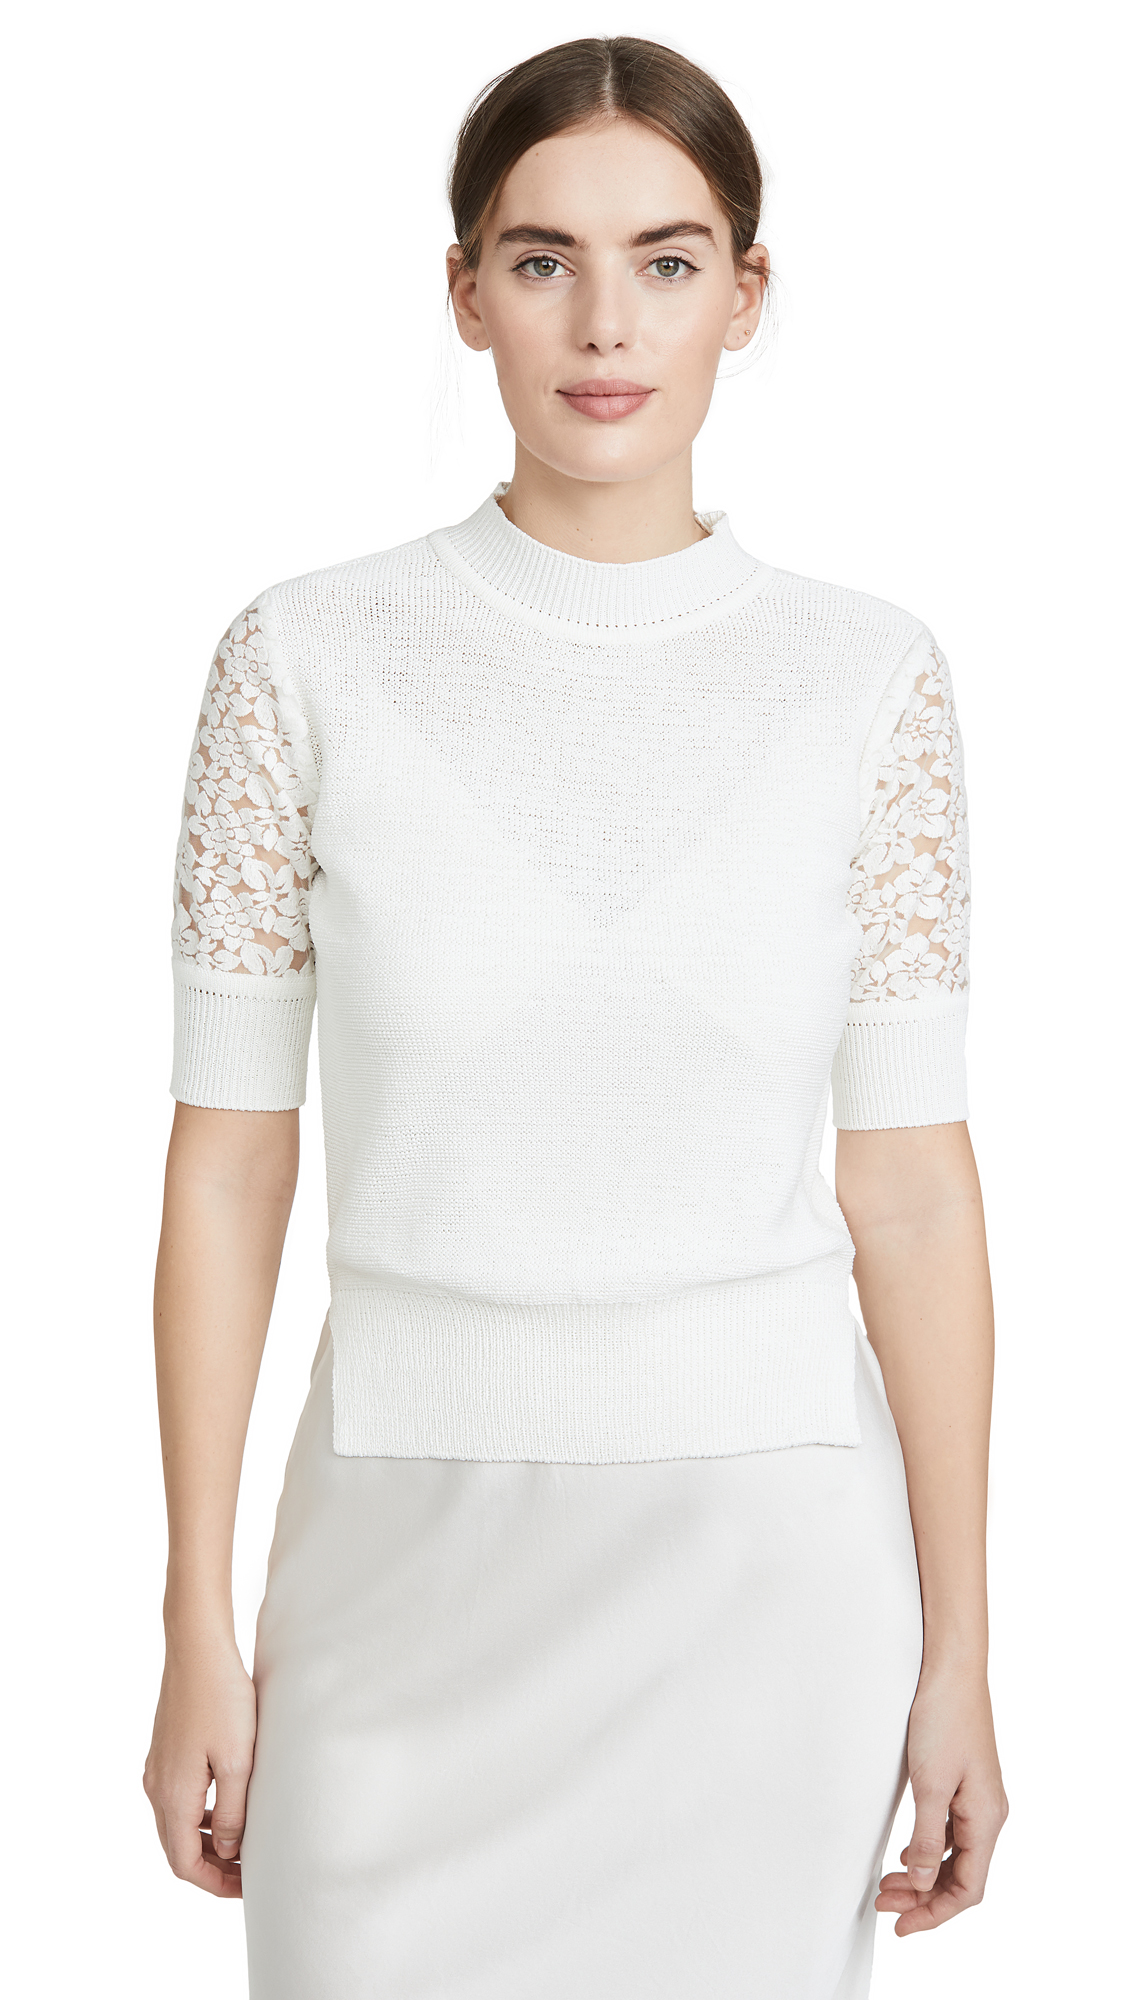 GOEN.J Lace Embroidered Crochet Knit Top - 50% Off Sale